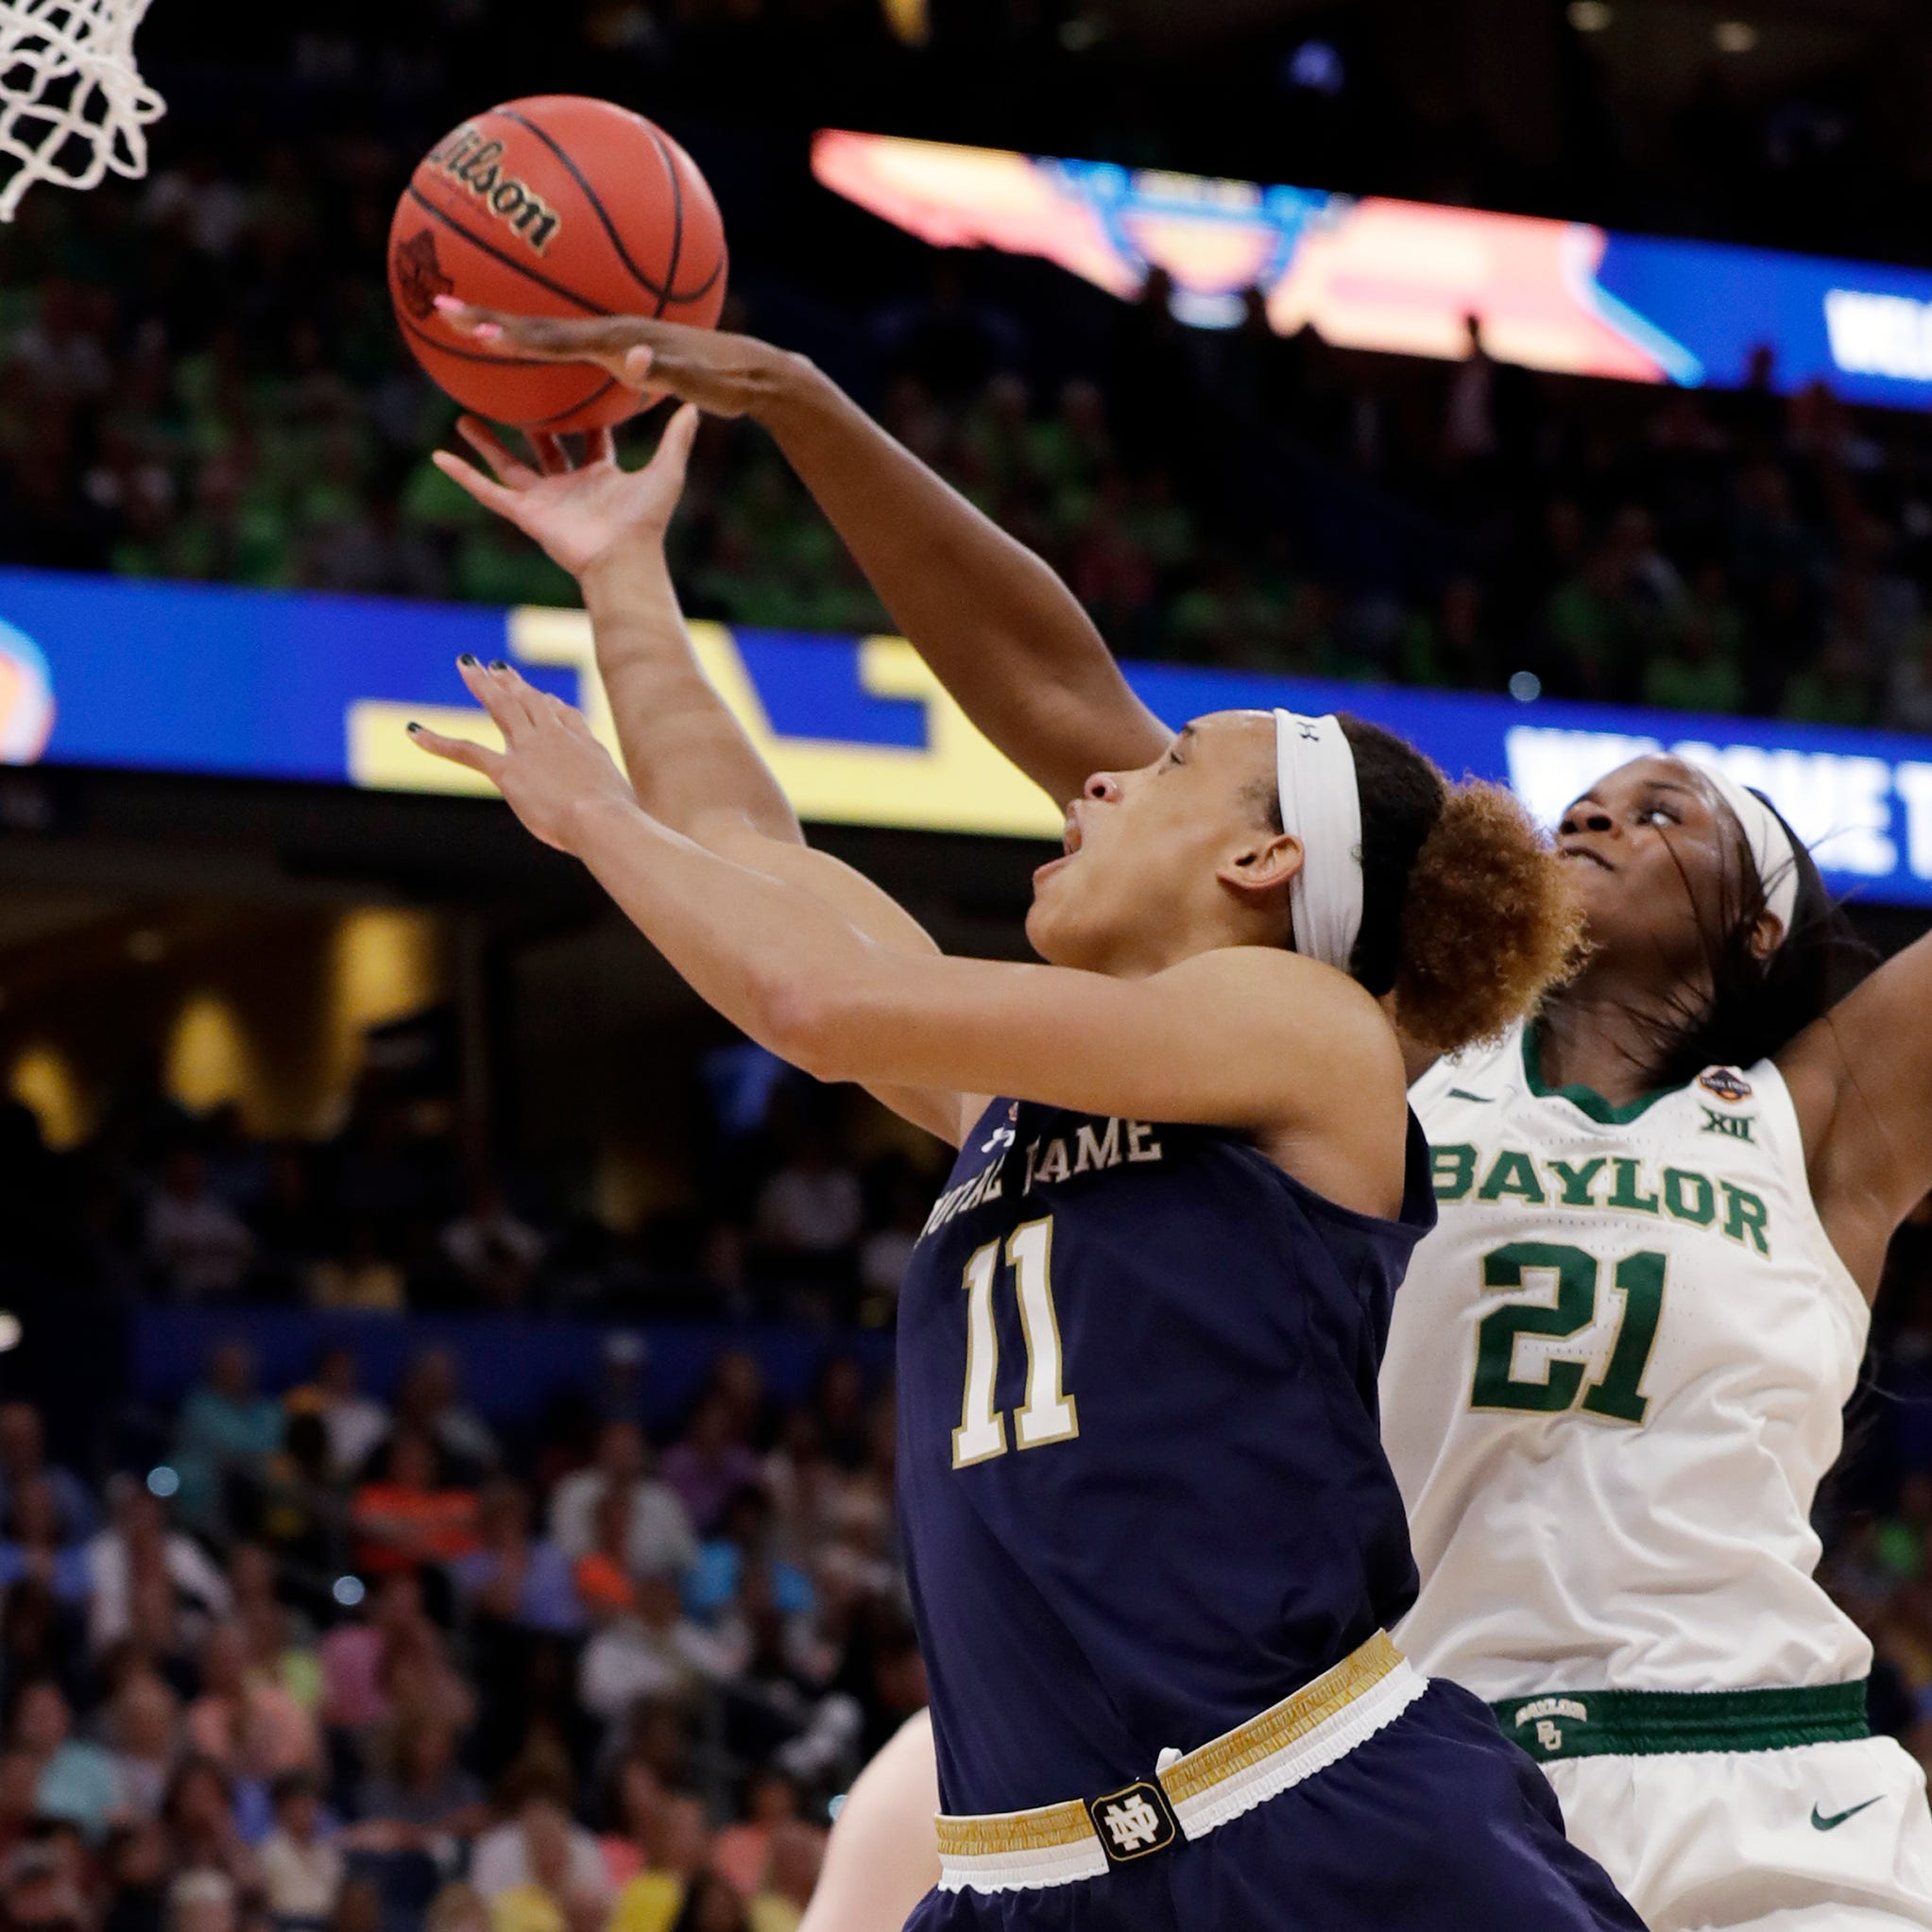 2019 Women's Final Four: Late miss causes Notre Dame rally to fall short in title game loss to Baylor